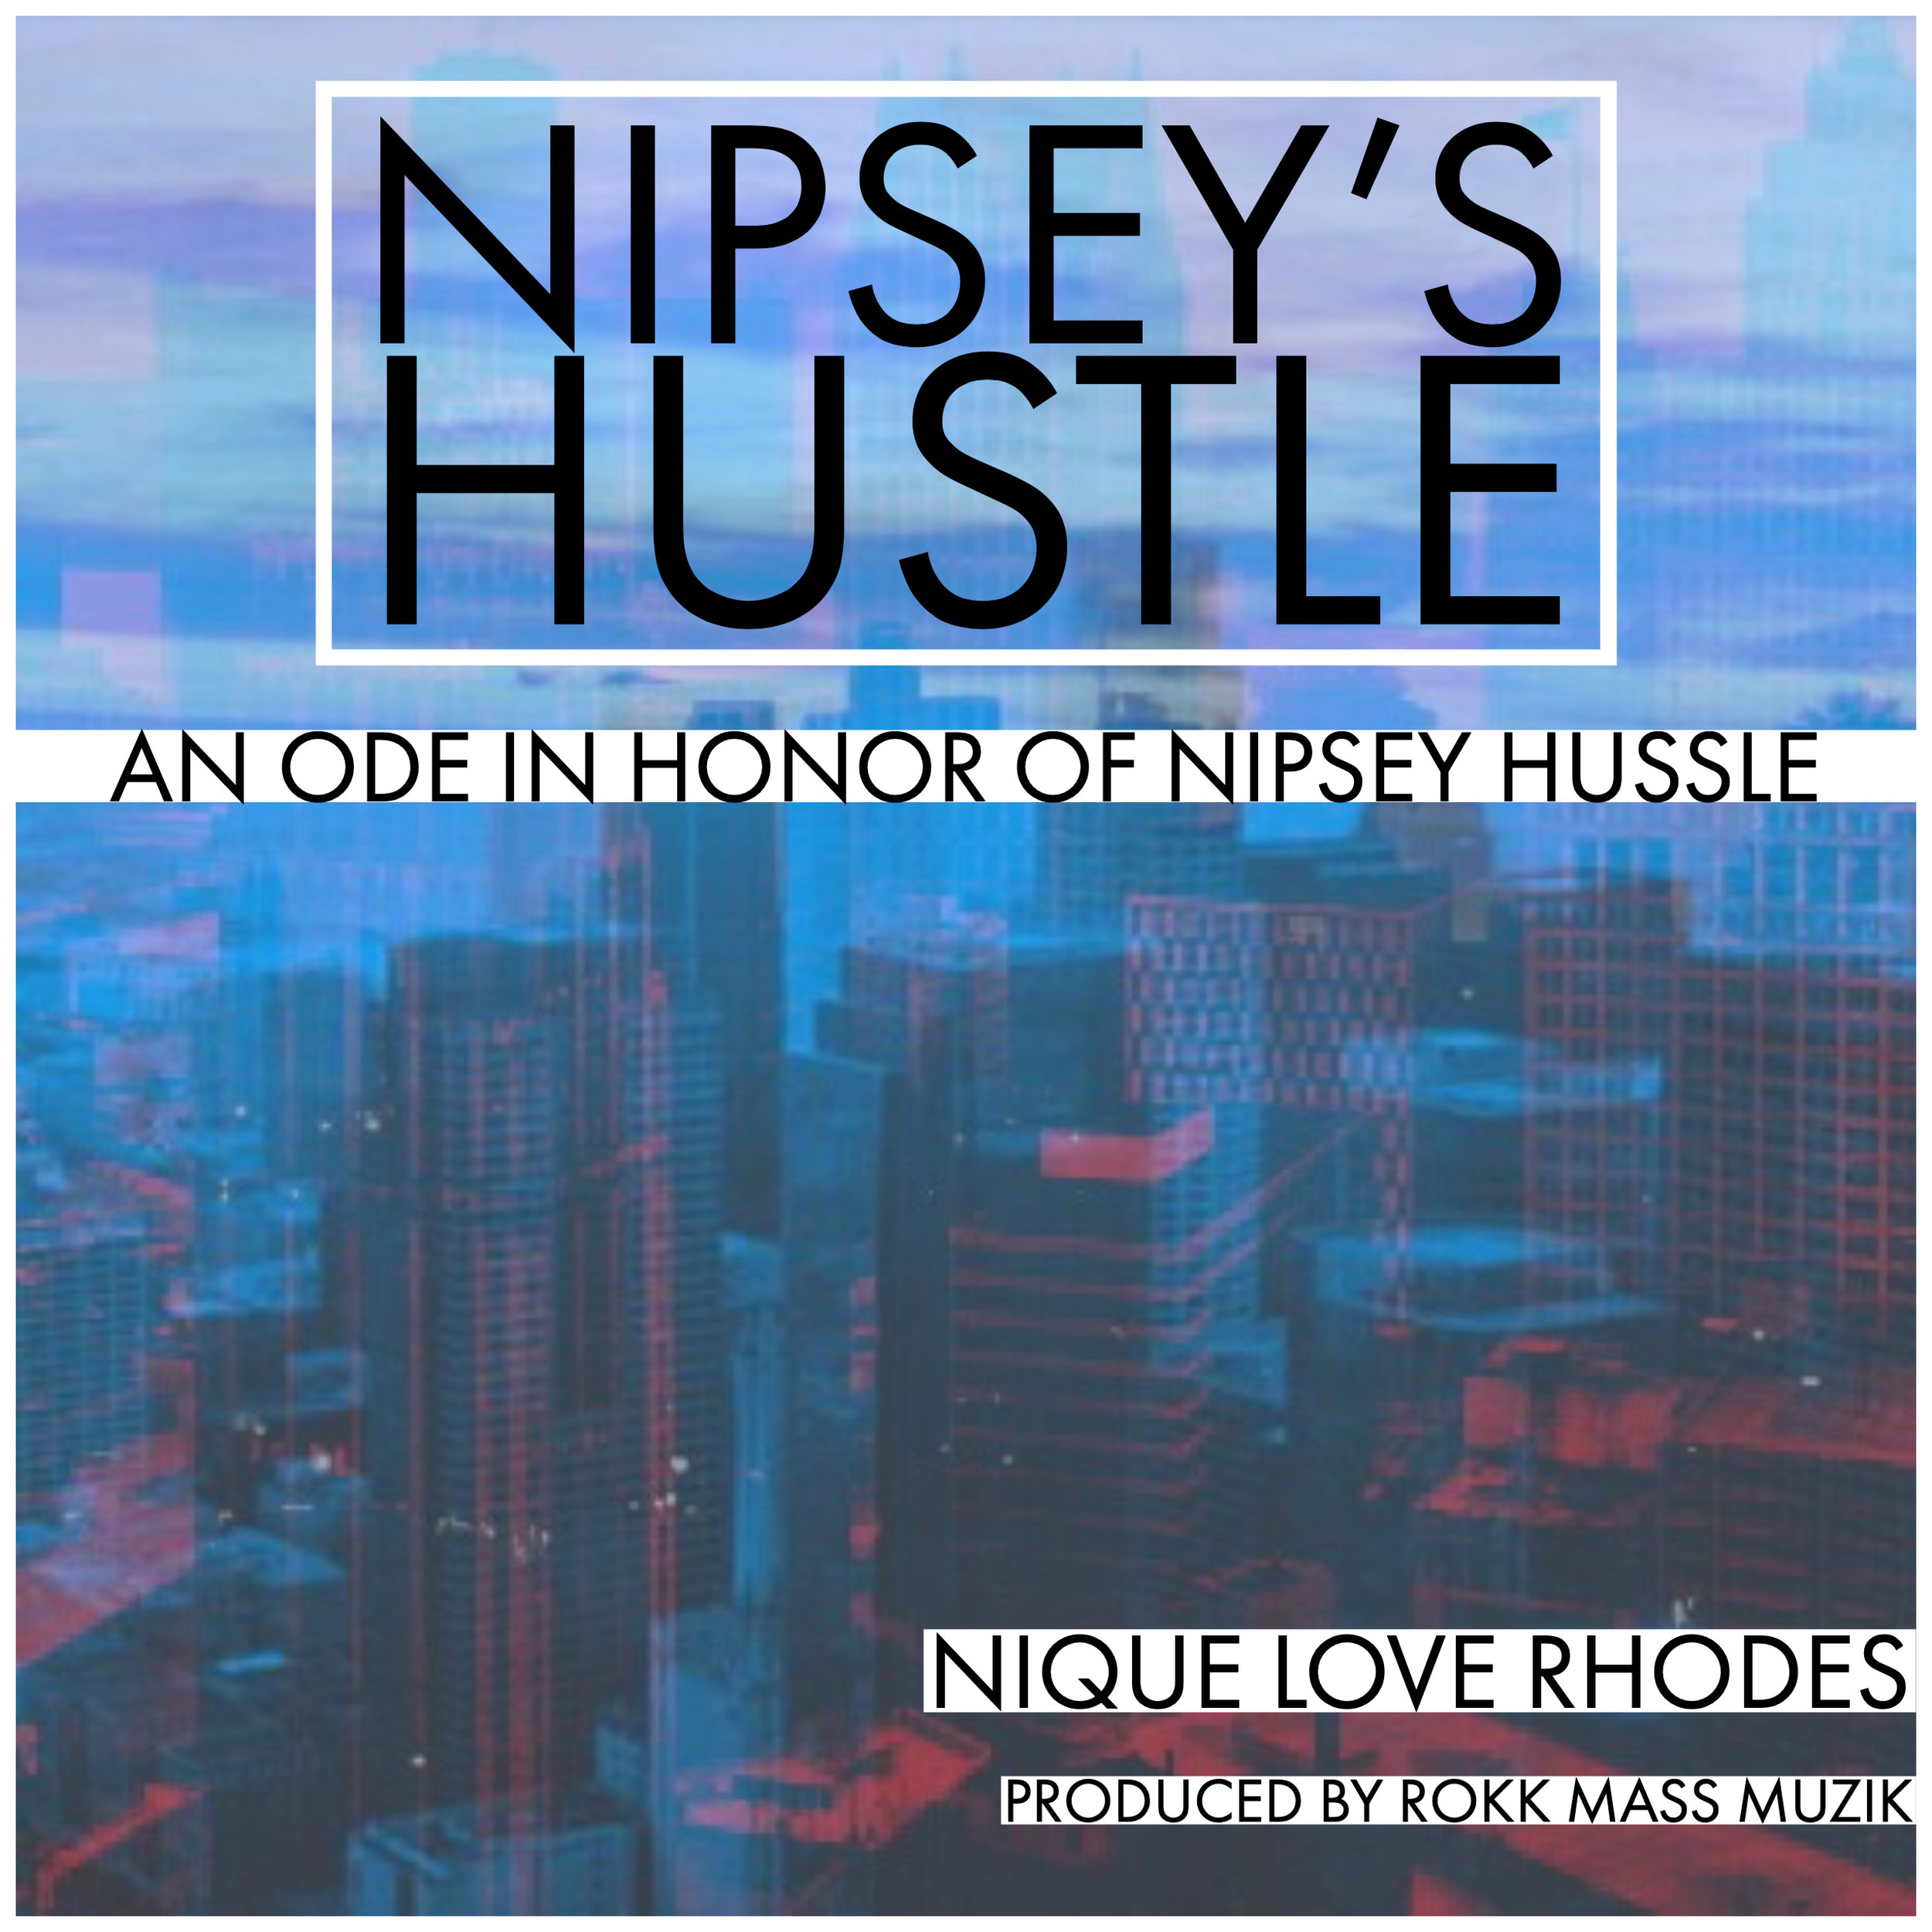 Nipsey's Hustle - A single ode in honor of Nipsey Hussle.